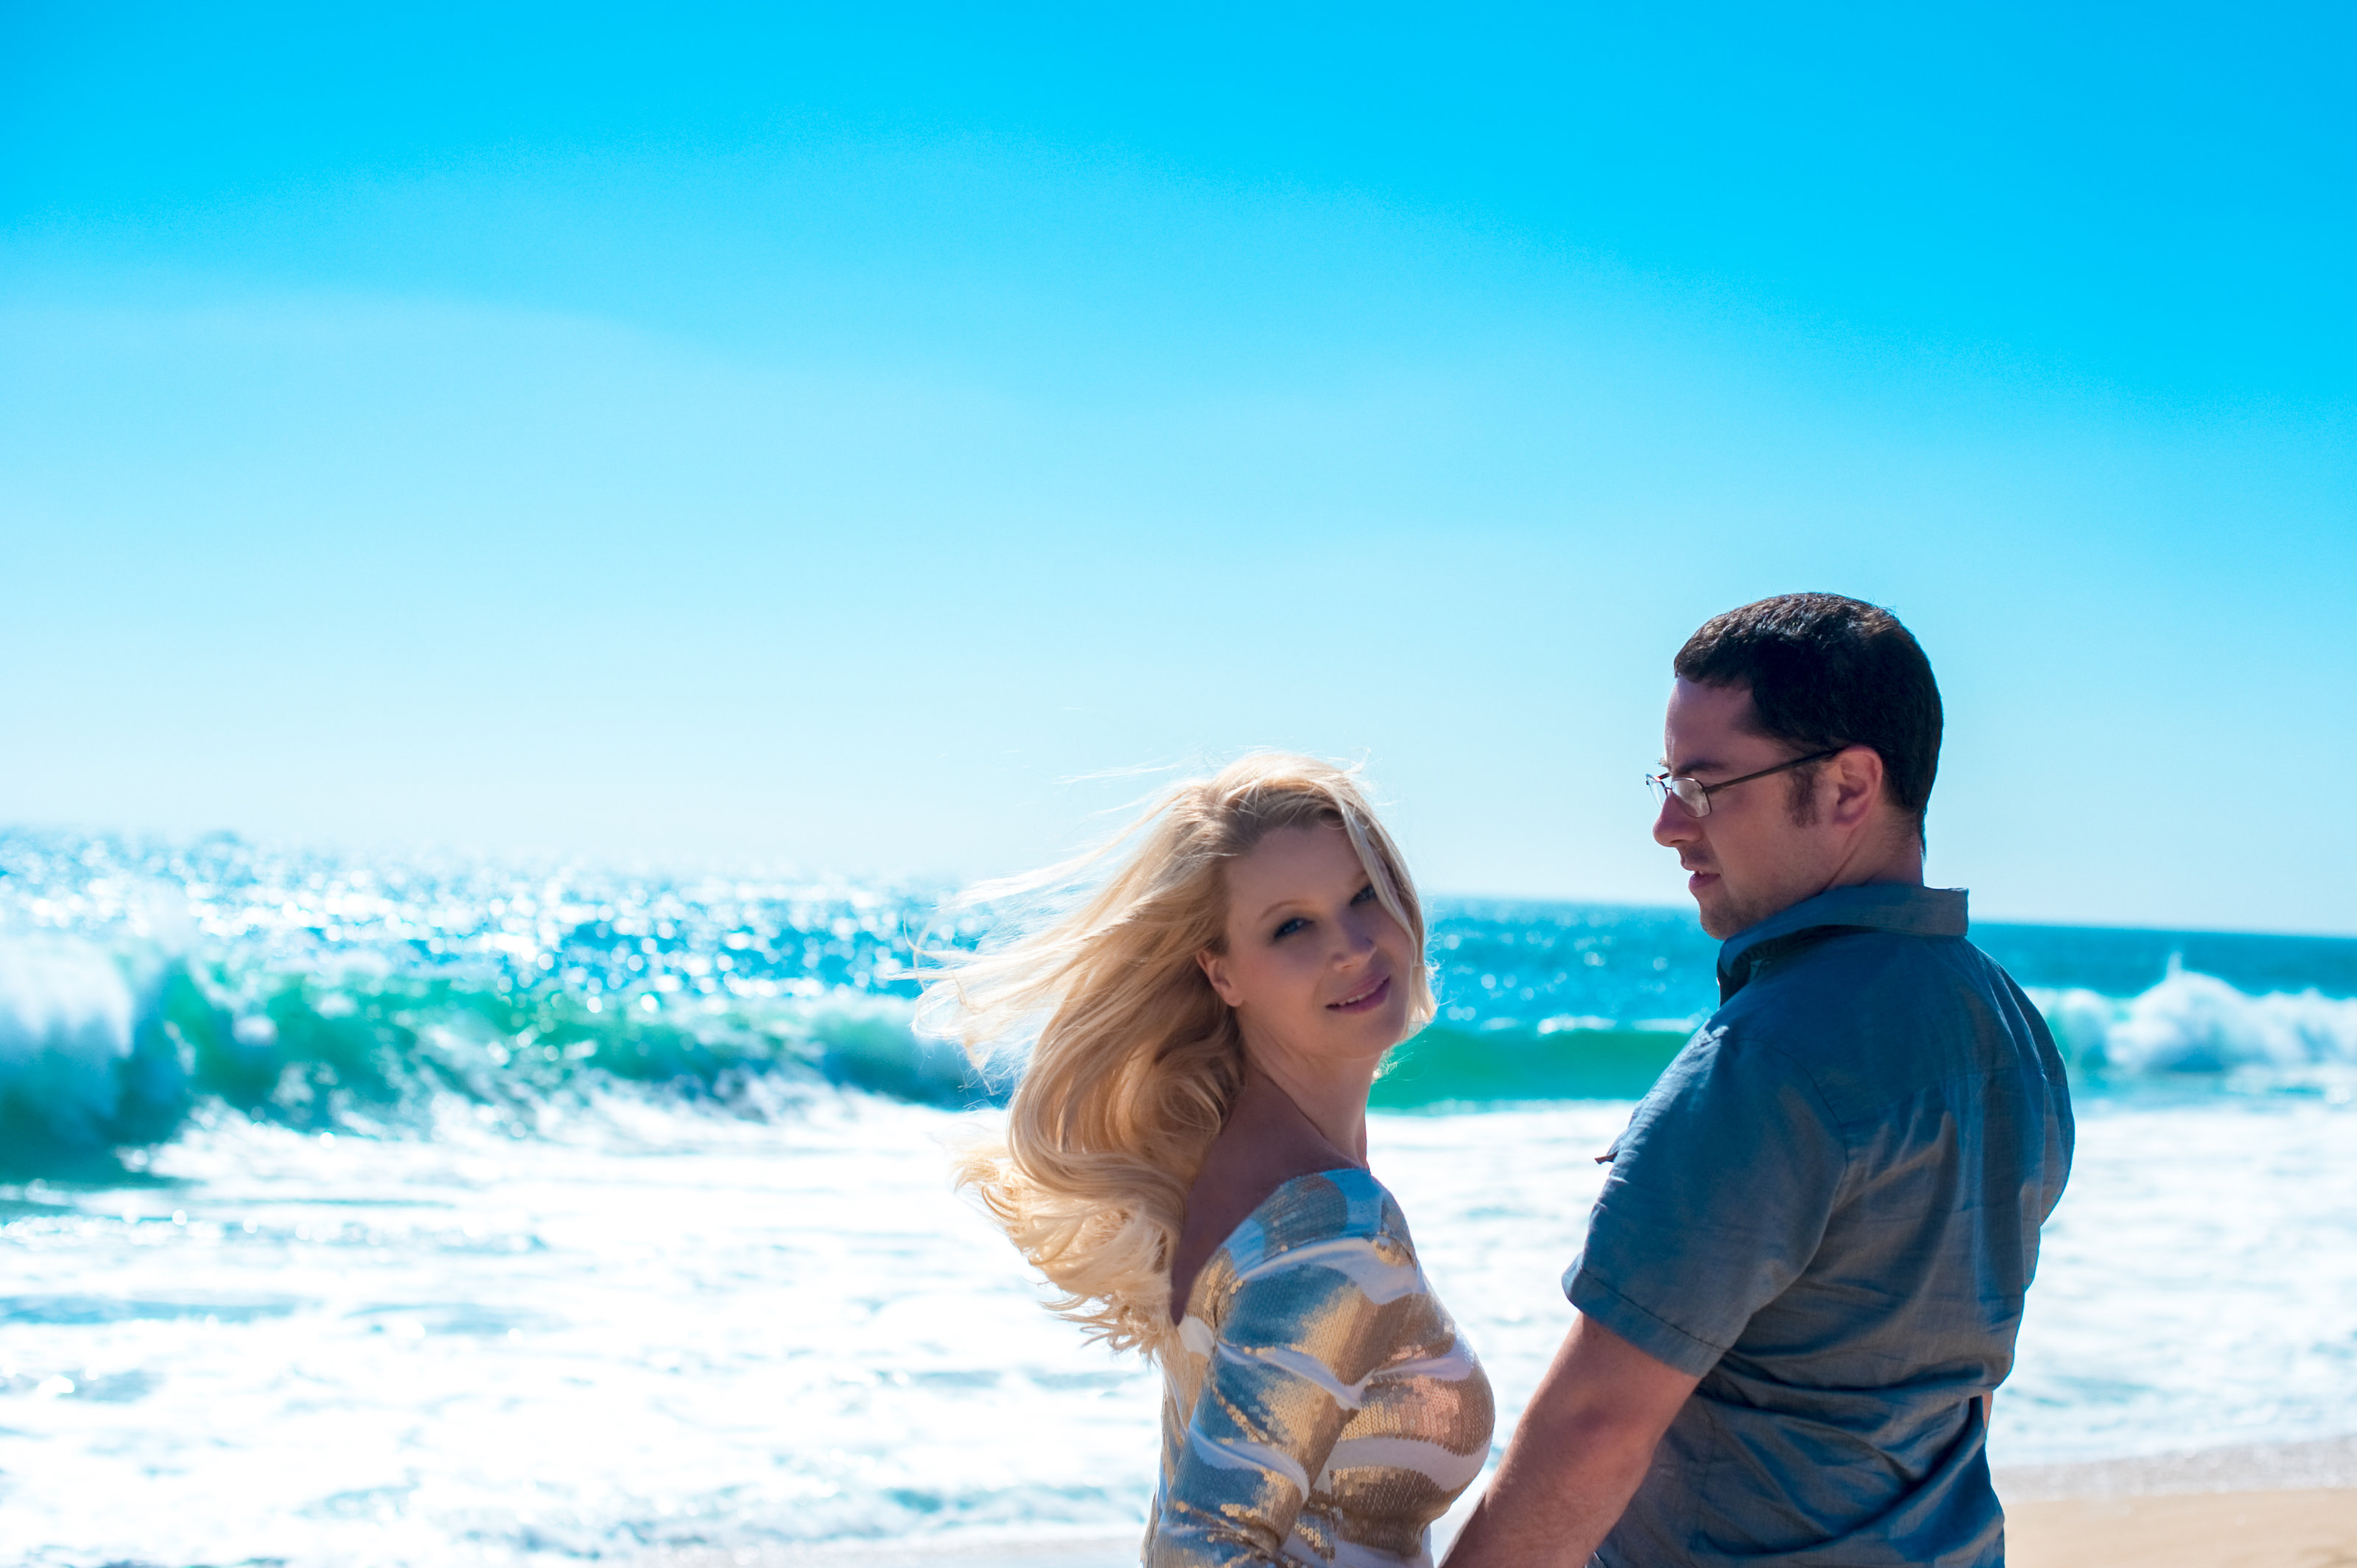 San Diego couple on the beach with wind blowing